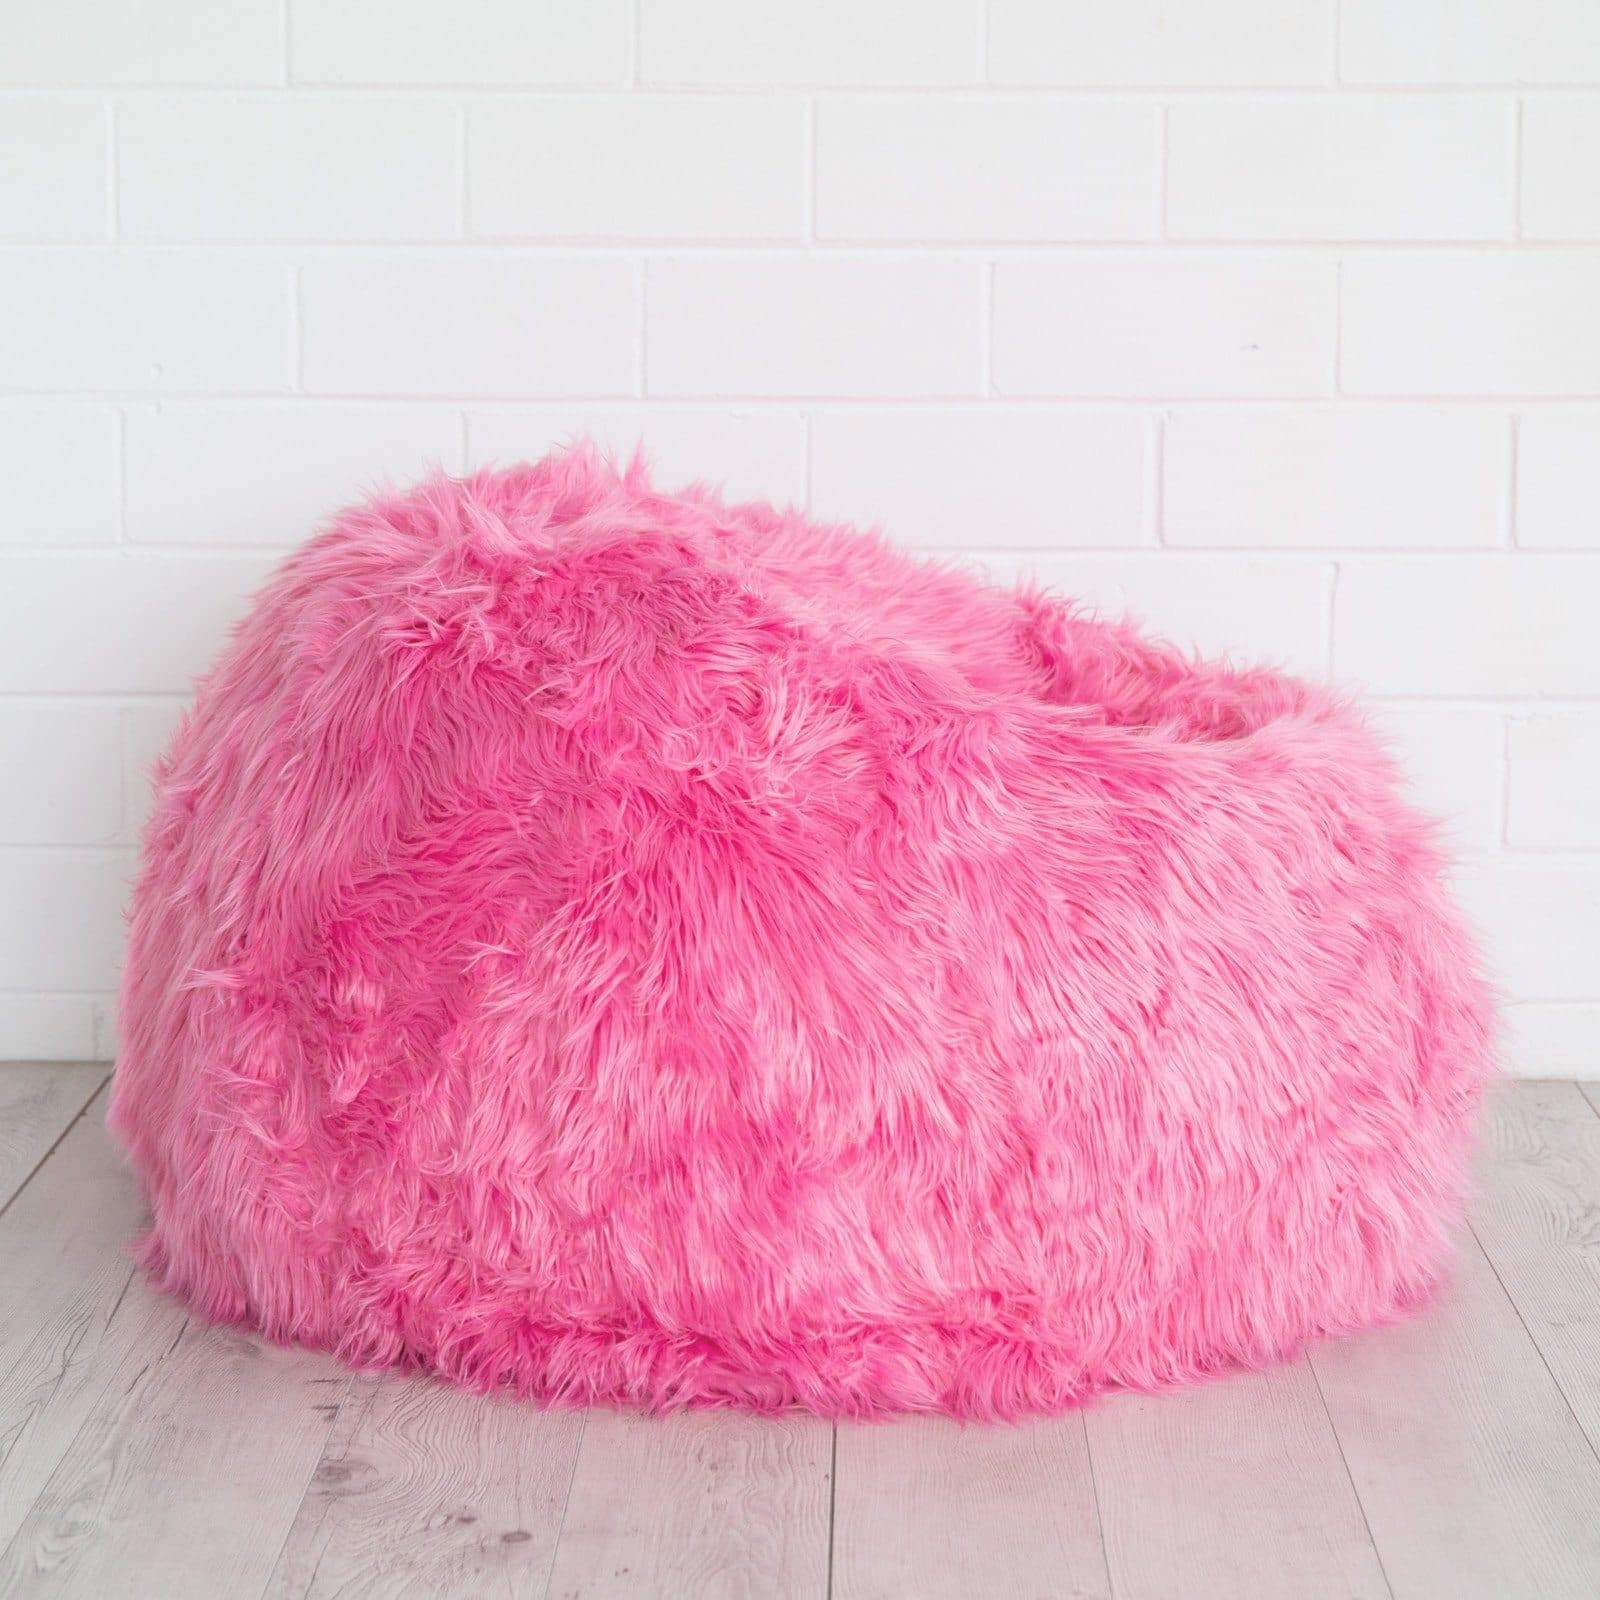 Tremendous Lush Fur Bean Bag Pink Caraccident5 Cool Chair Designs And Ideas Caraccident5Info